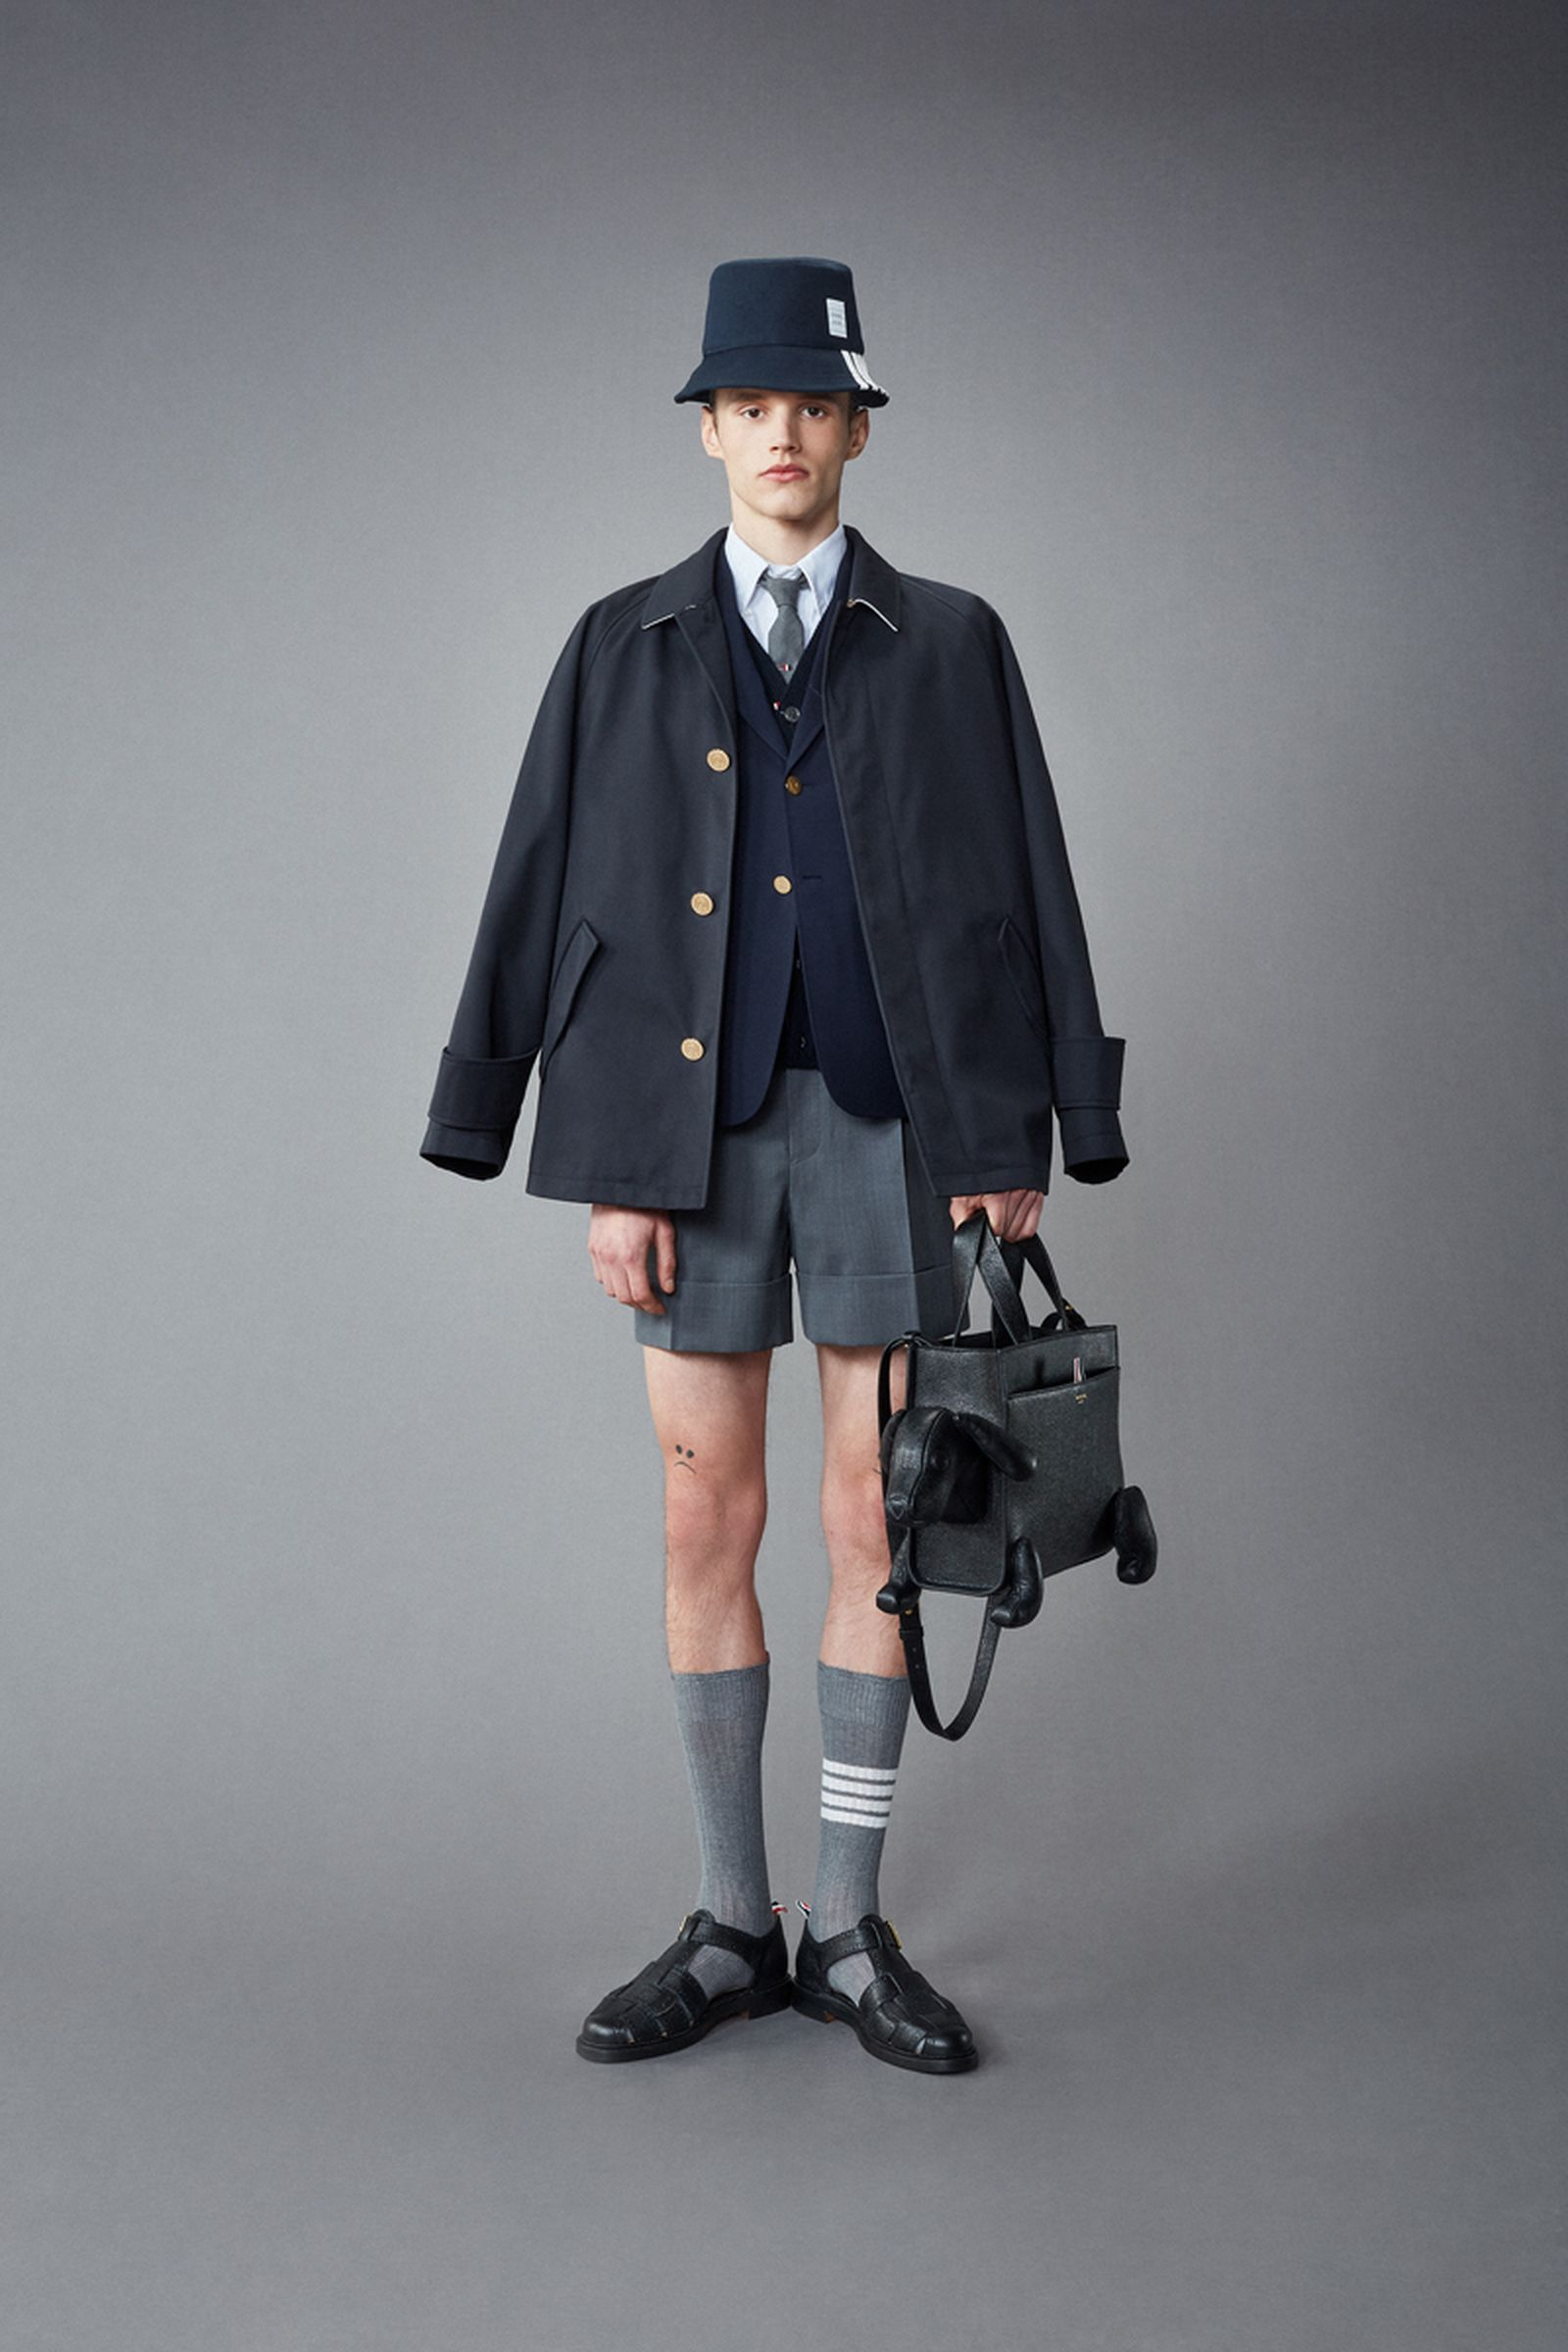 thom-browne-resort-2022-collection- (18)